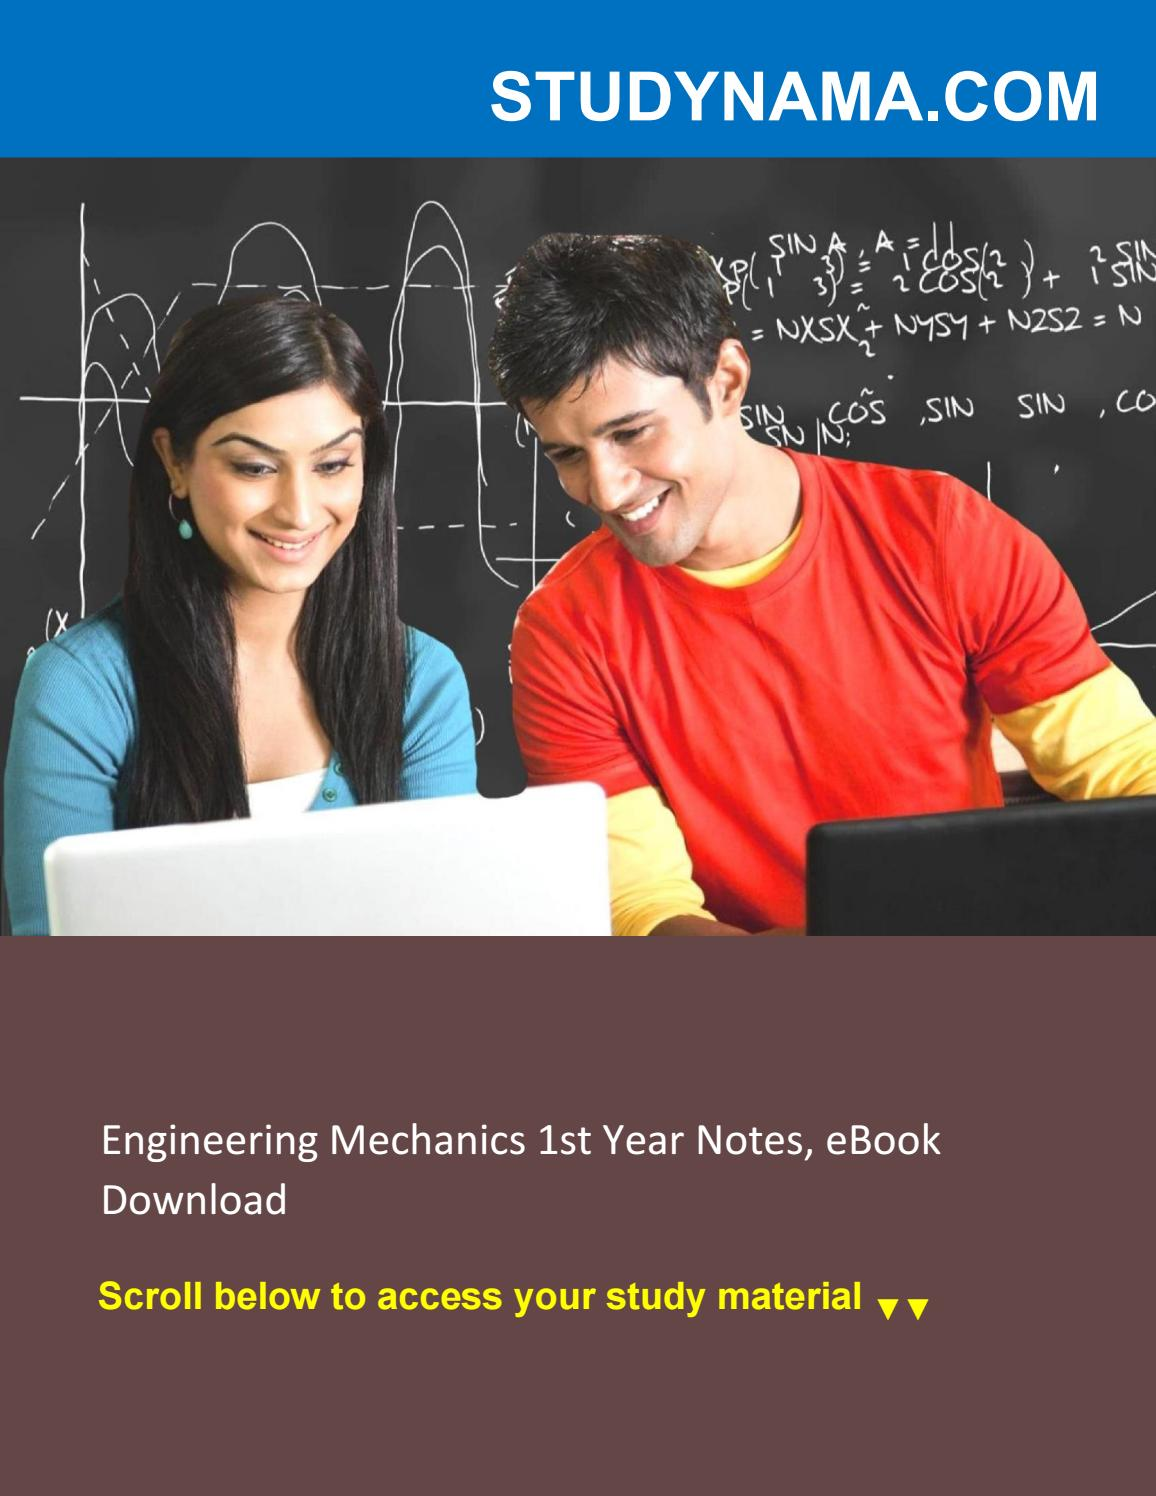 Engineering Mechanics 1st Year Notes, eBook Download by